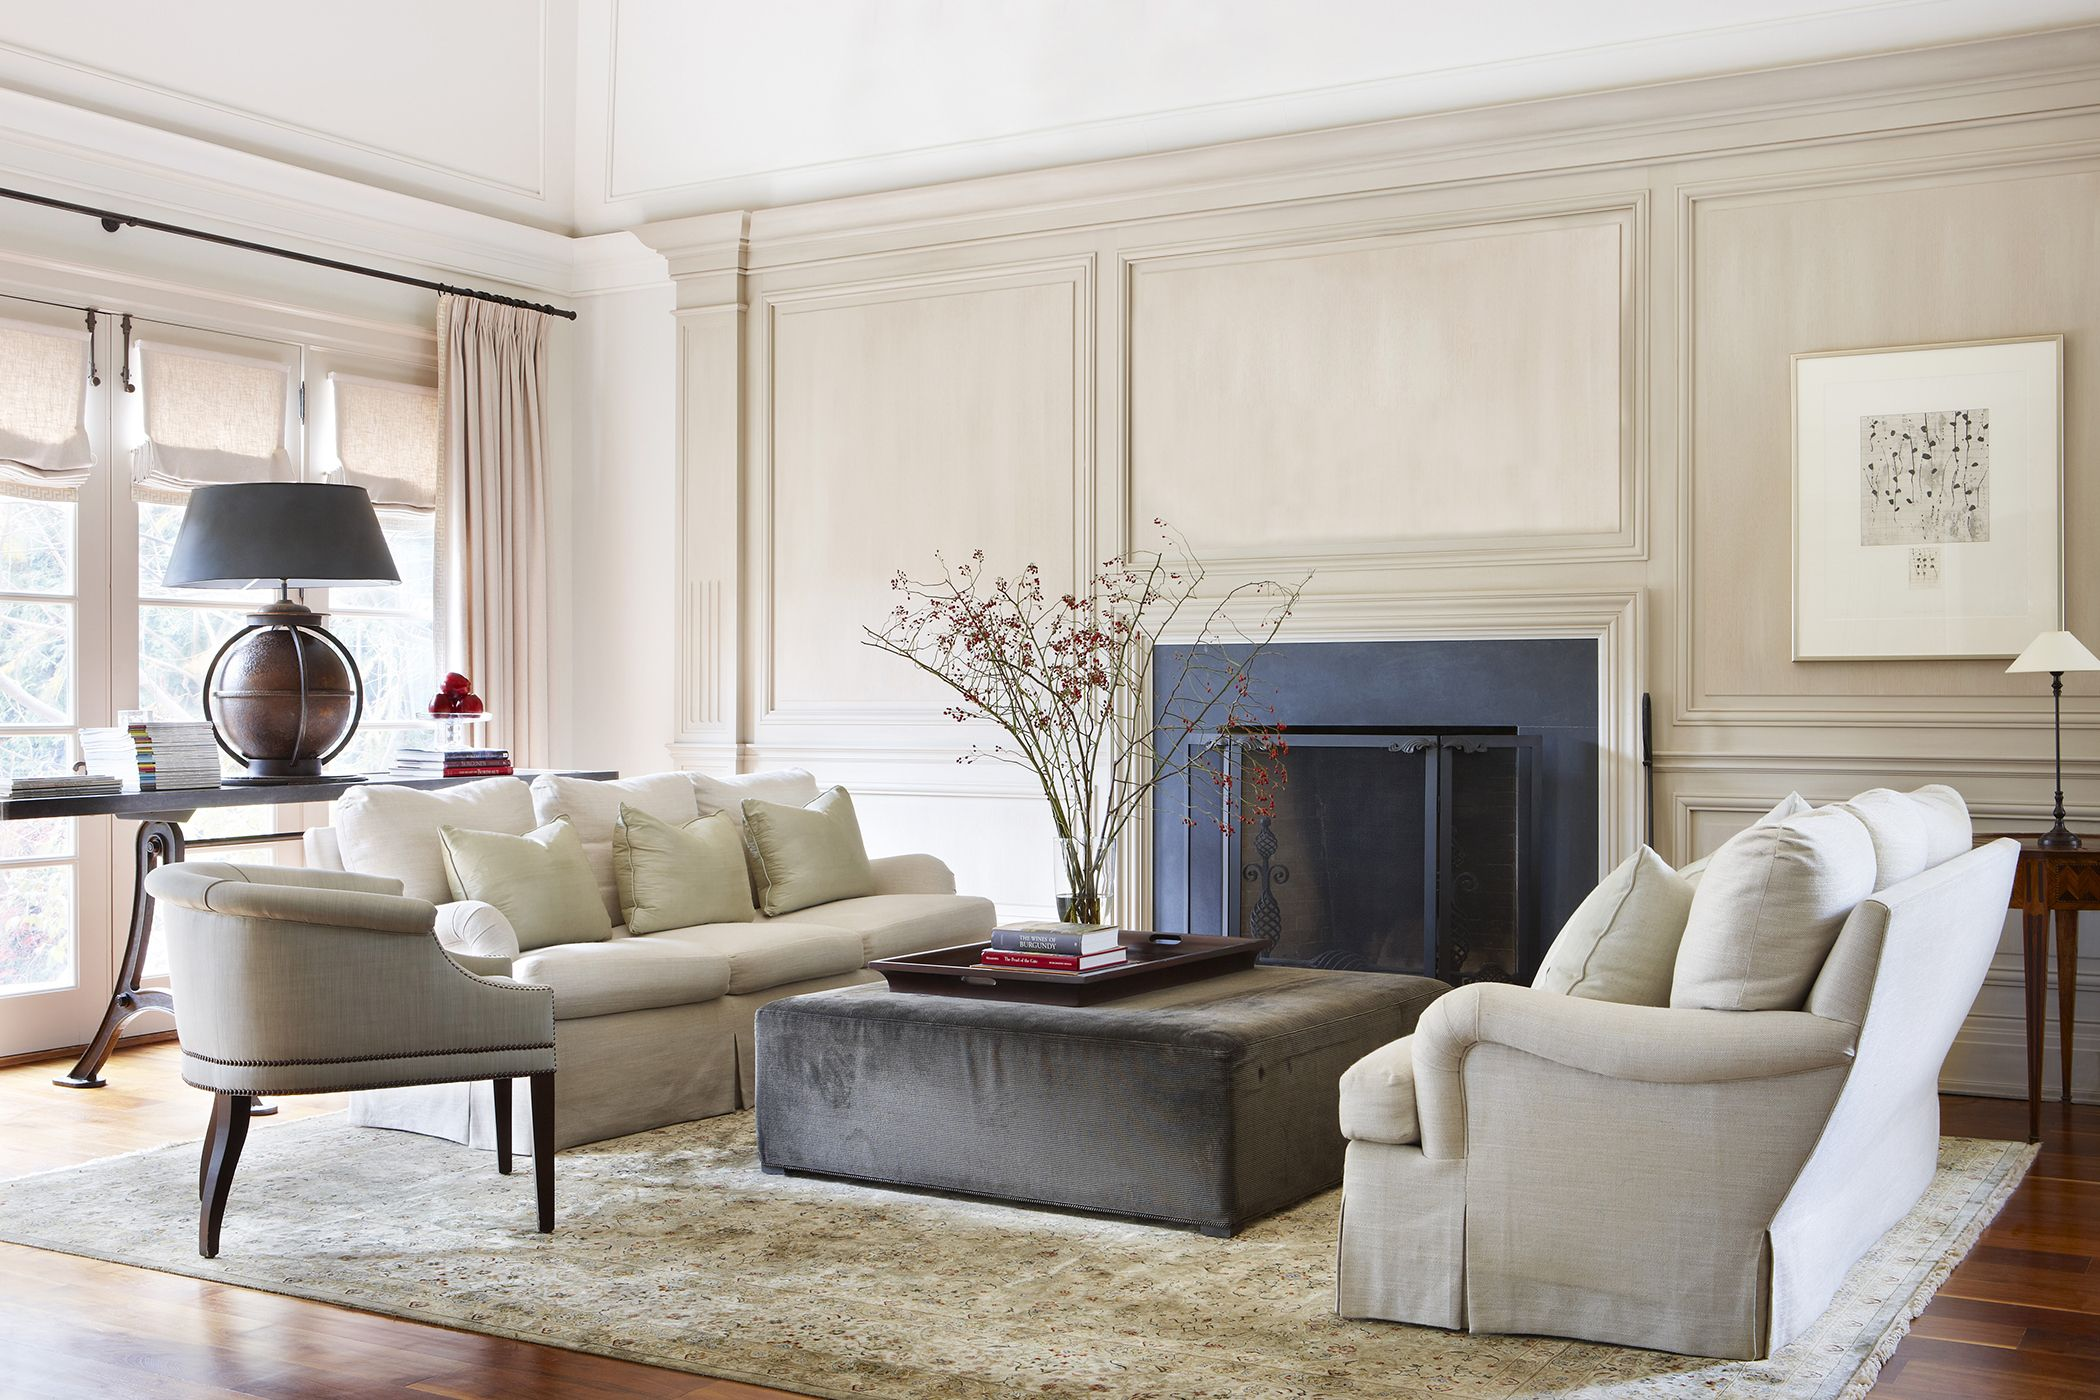 Classic Living Rooms Interior Design Classic Living Roomjulie Charbonneau #makelivinganart